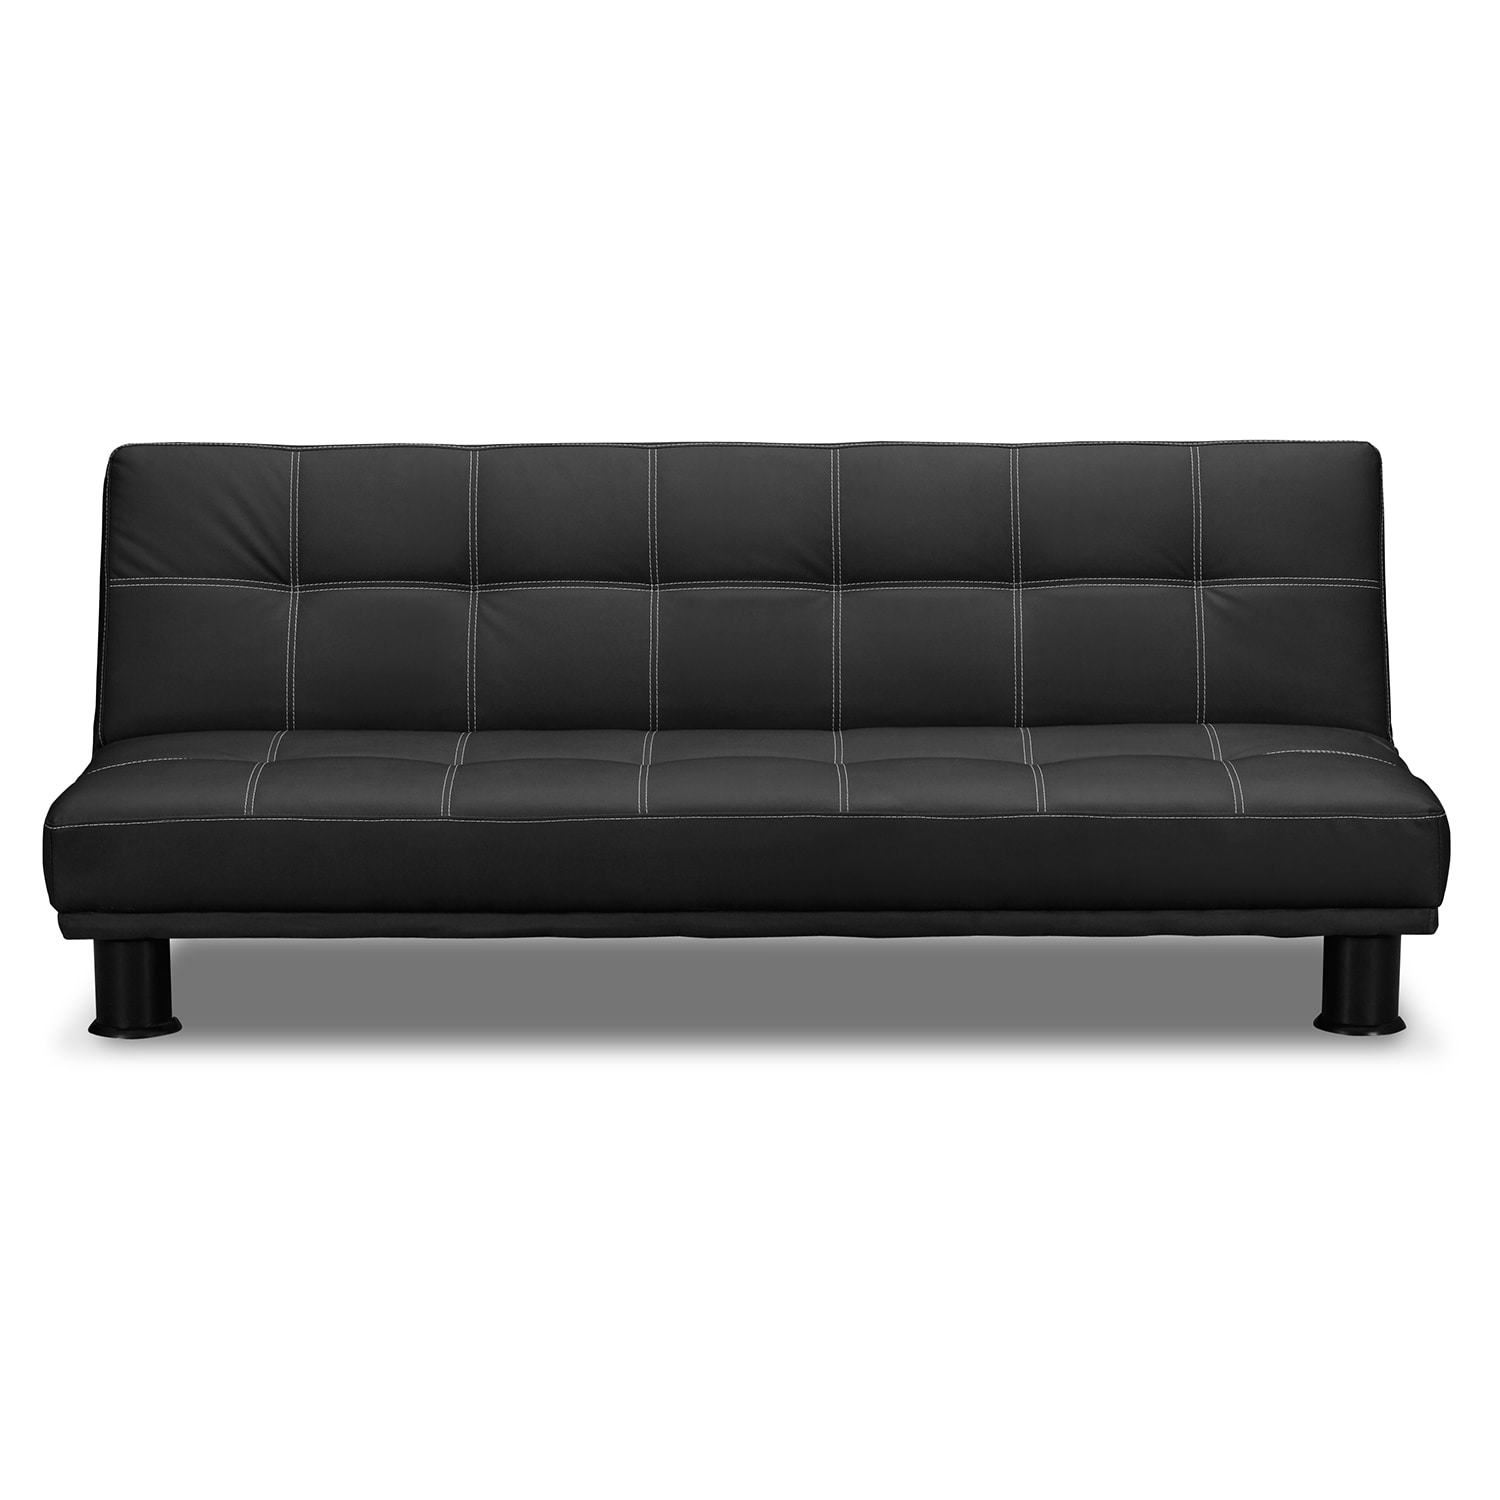 Phyllo Futon Sofa Bed Black Value City Furniture